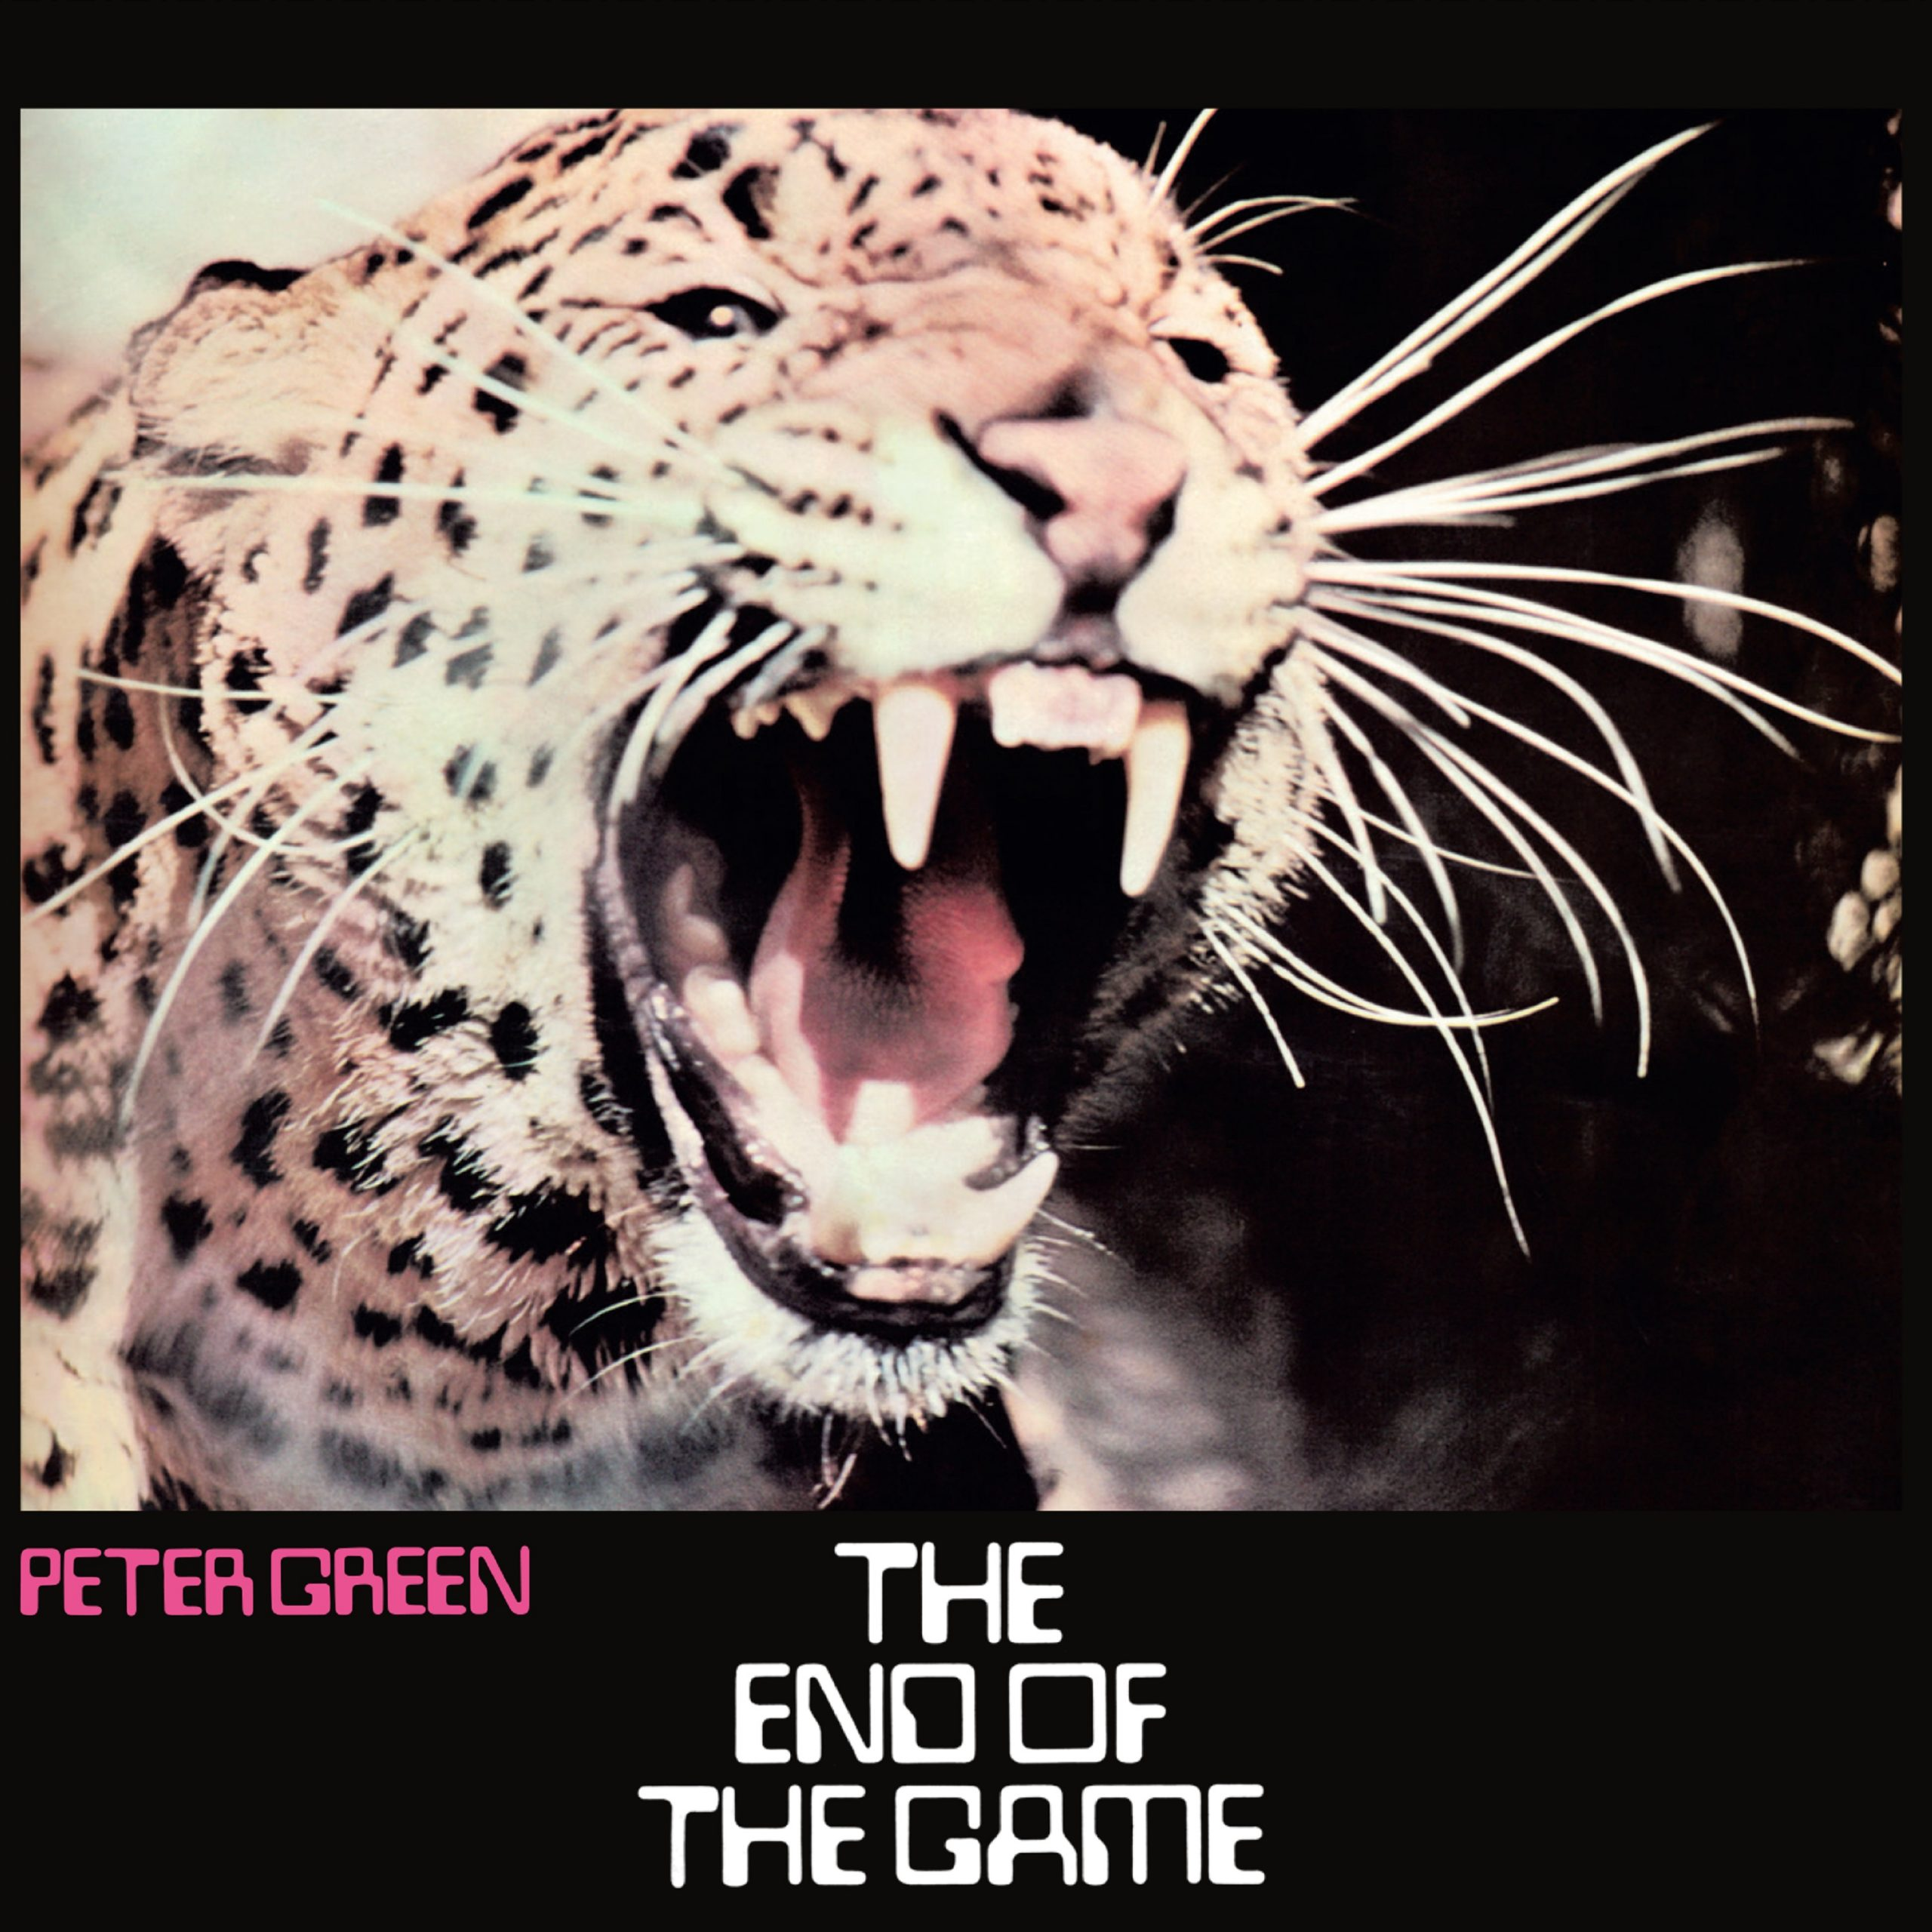 The End of the Game album cover